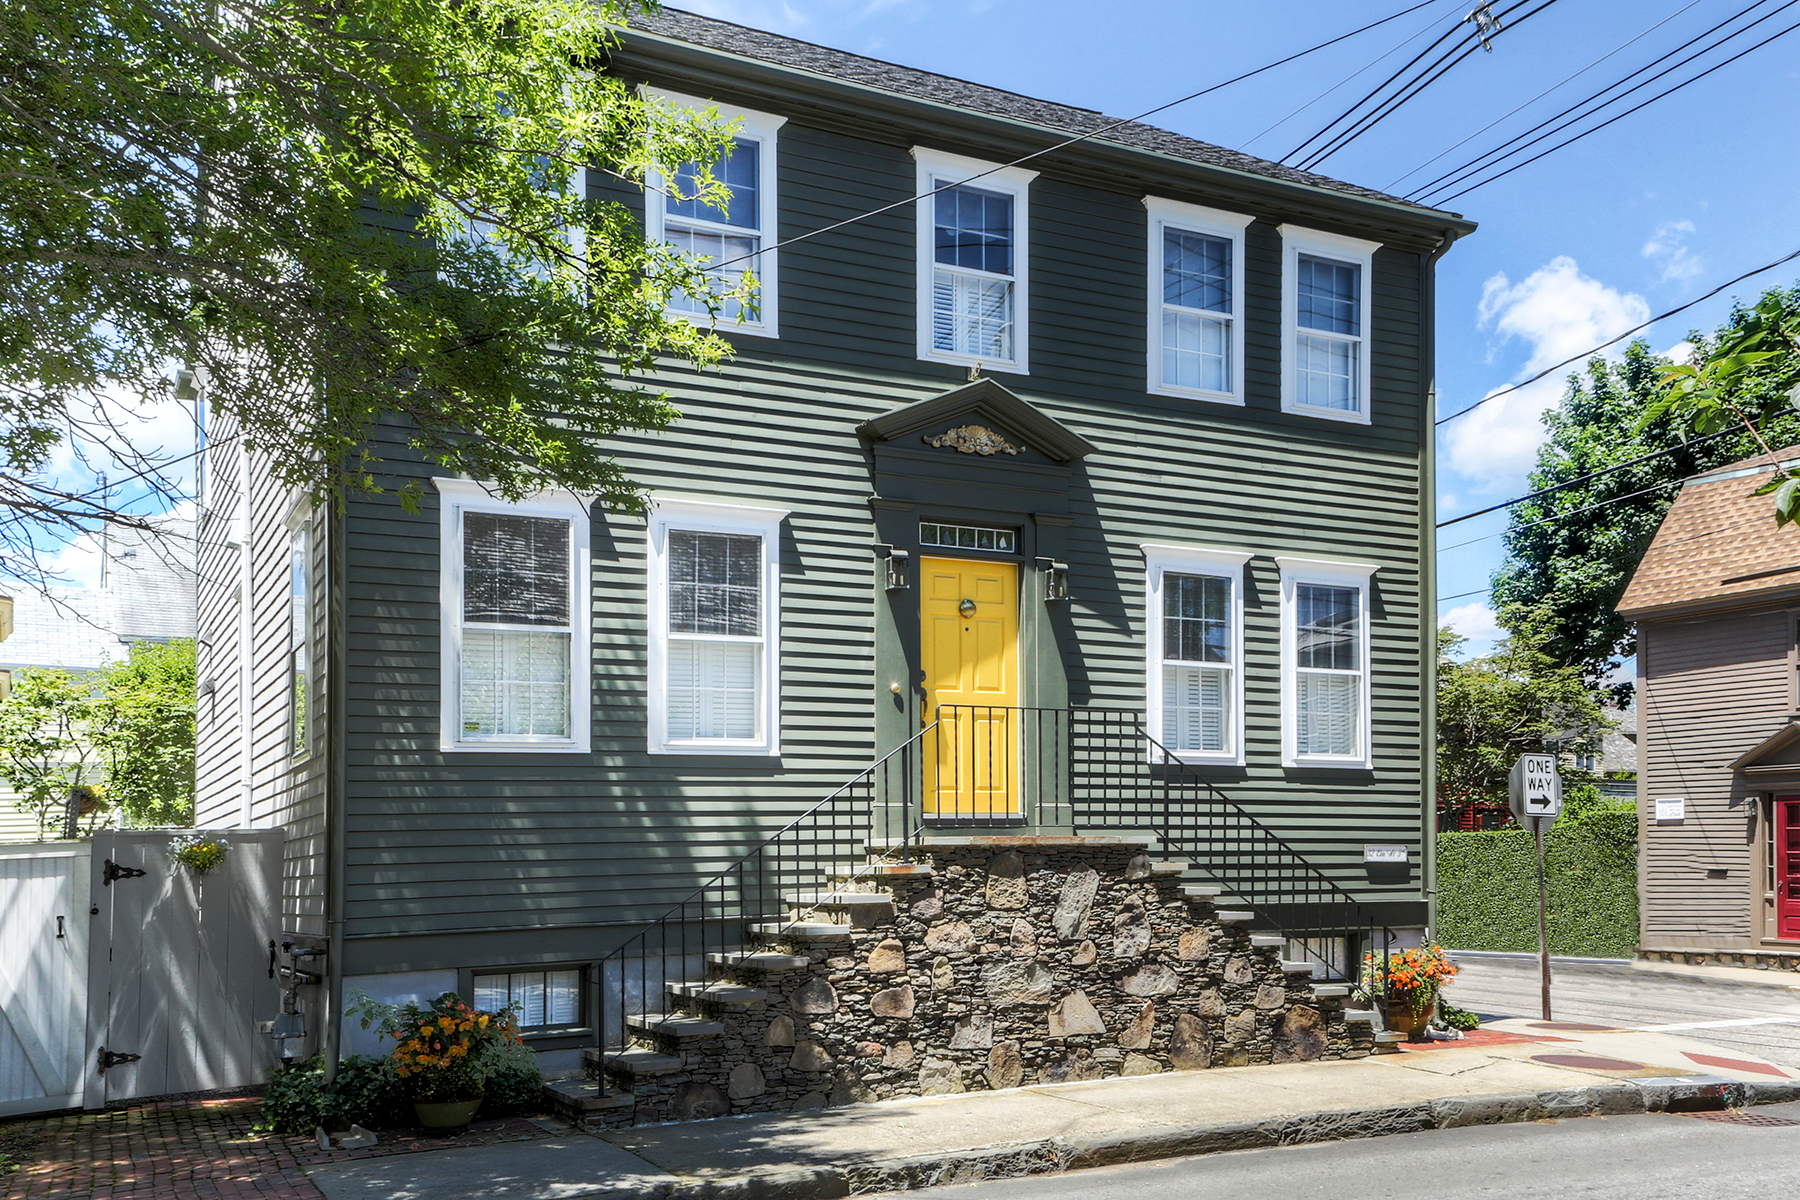 Single Family Home for Sale at The Point 32 Elm Street Newport, Rhode Island 02840 United States